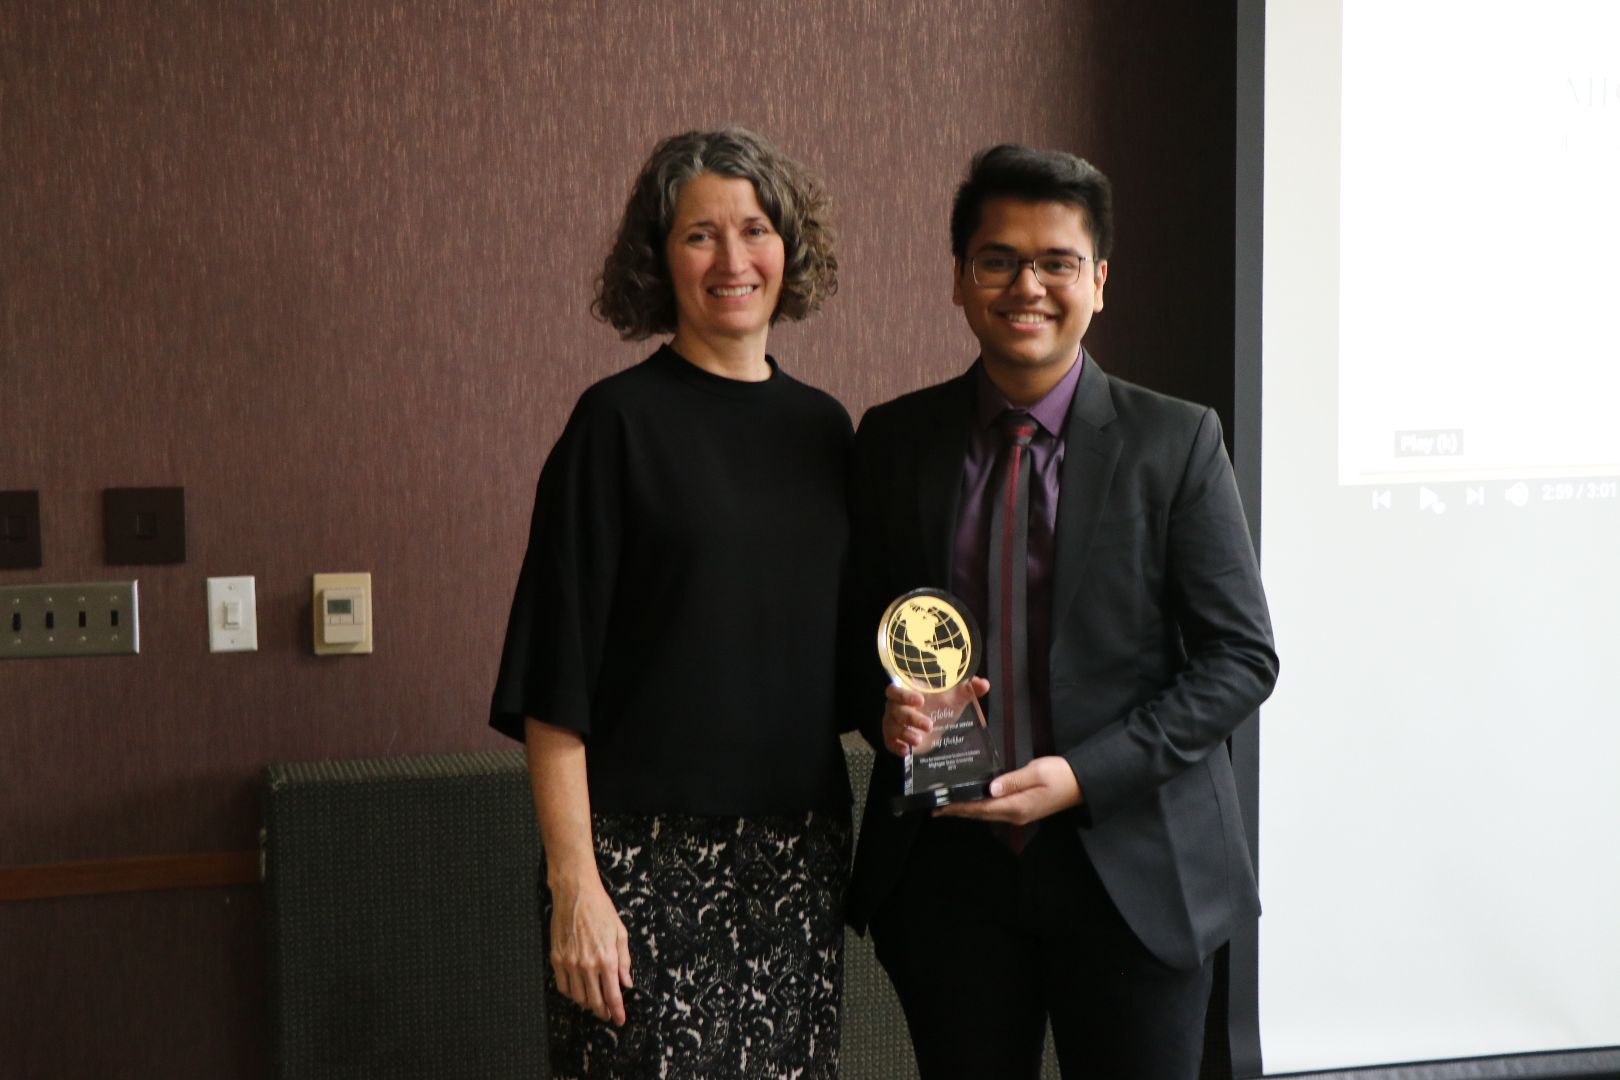 Woman standing with young man, who is holding a Globie Award trophy.